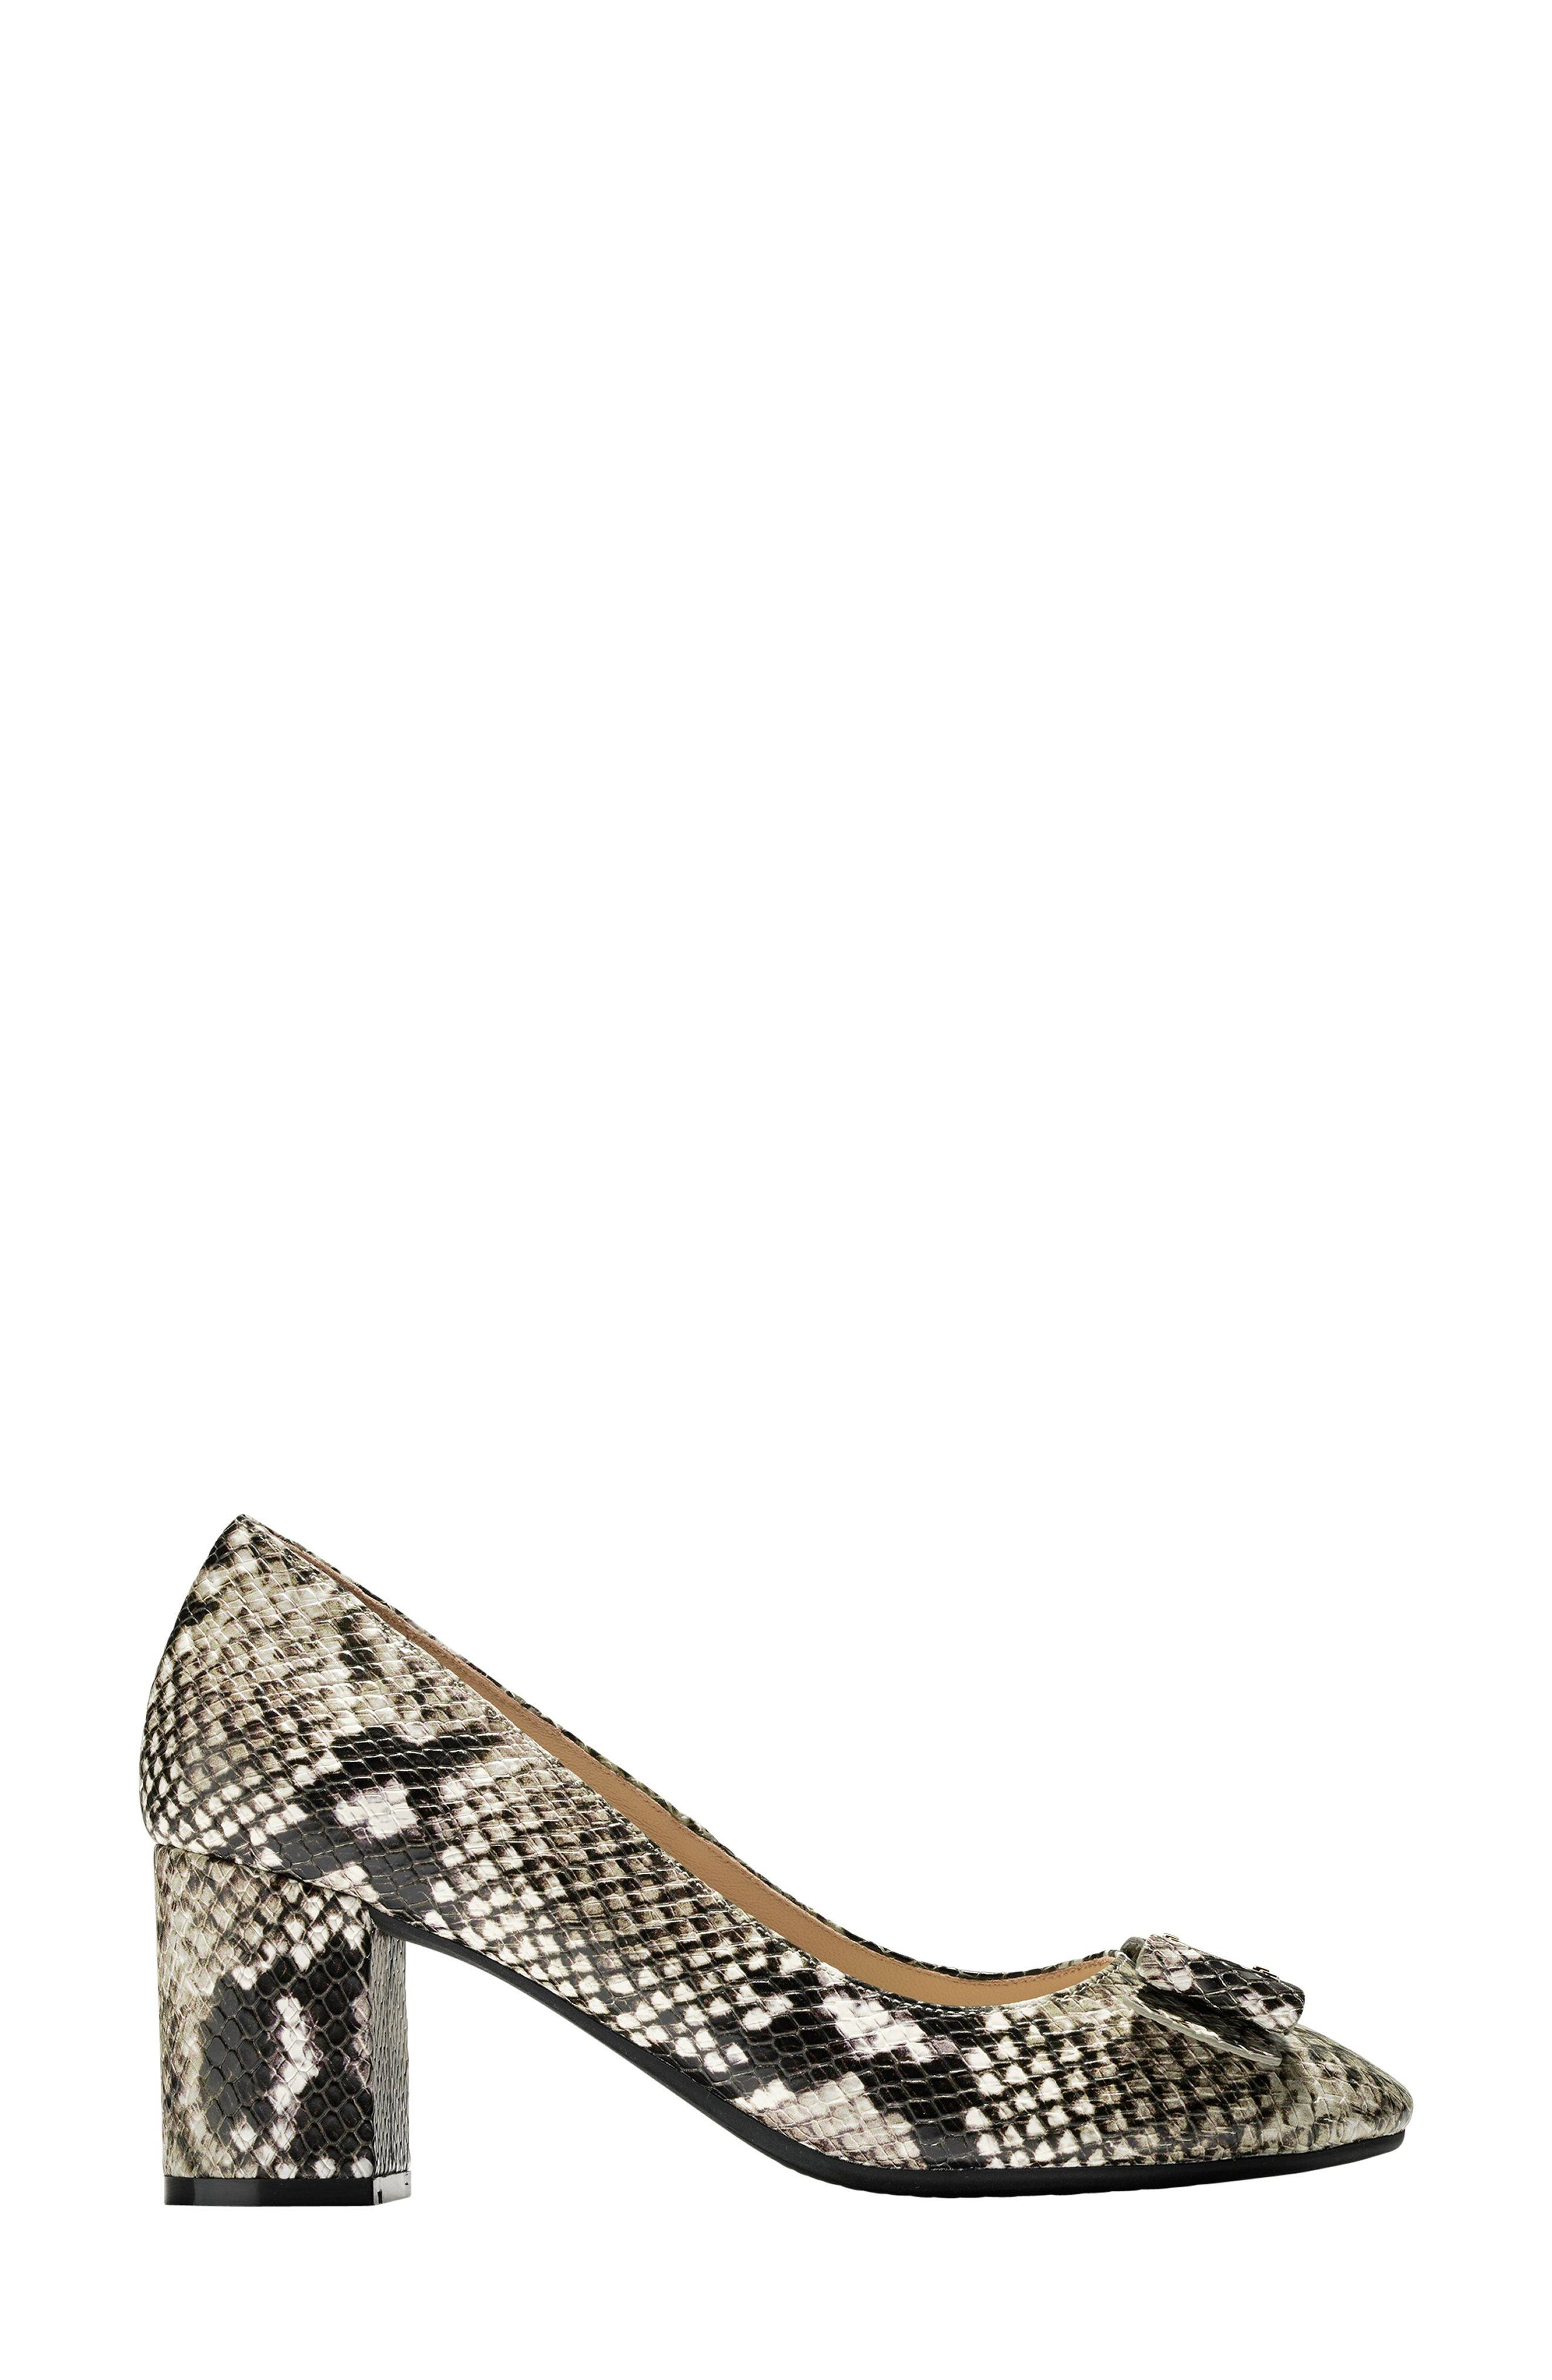 Tali Bow Pump,                             Alternate thumbnail 3, color,                             Beige Snake Print Leather